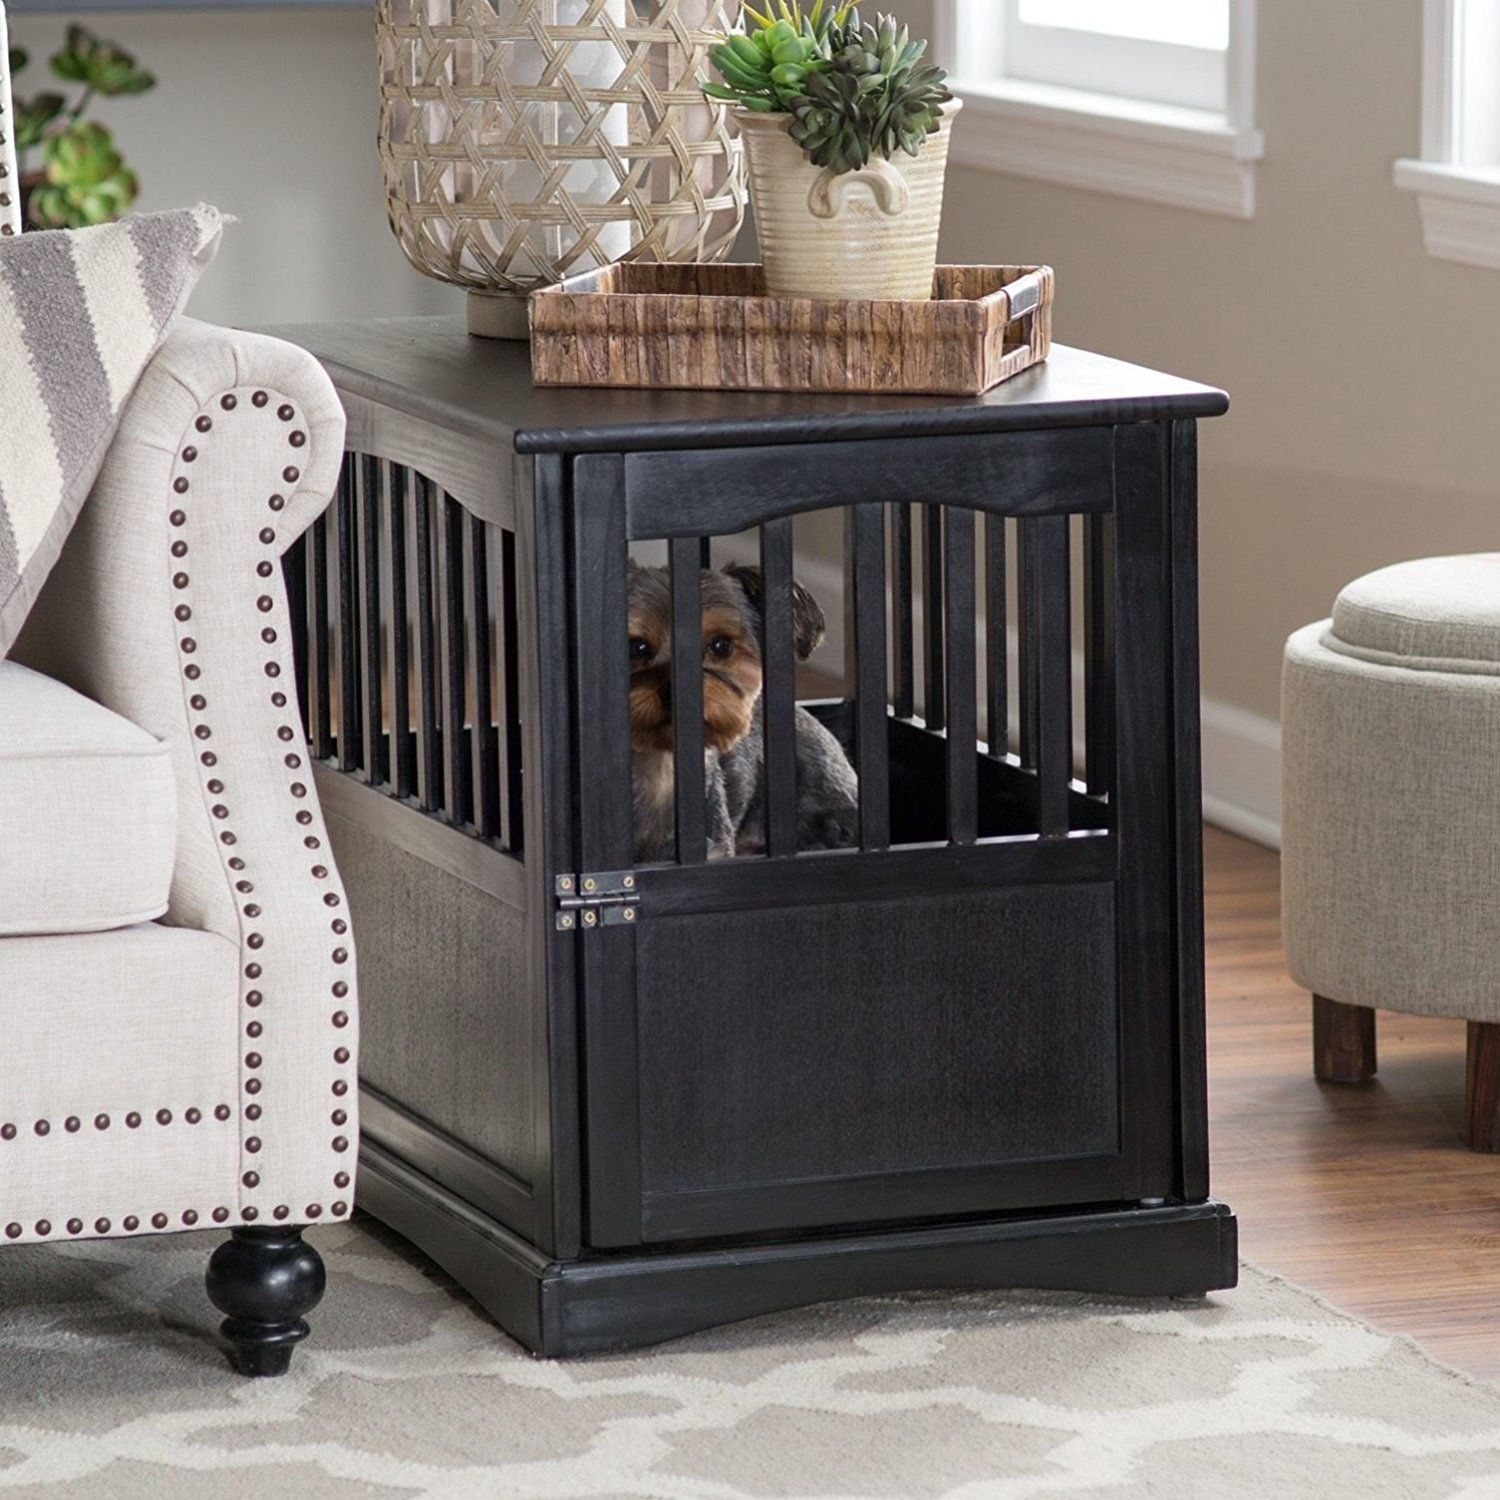 dog crate furniture end table decorative crates kennel that look like contemporary montreal glass side tables for living room round brown patio universal hollywood collection two